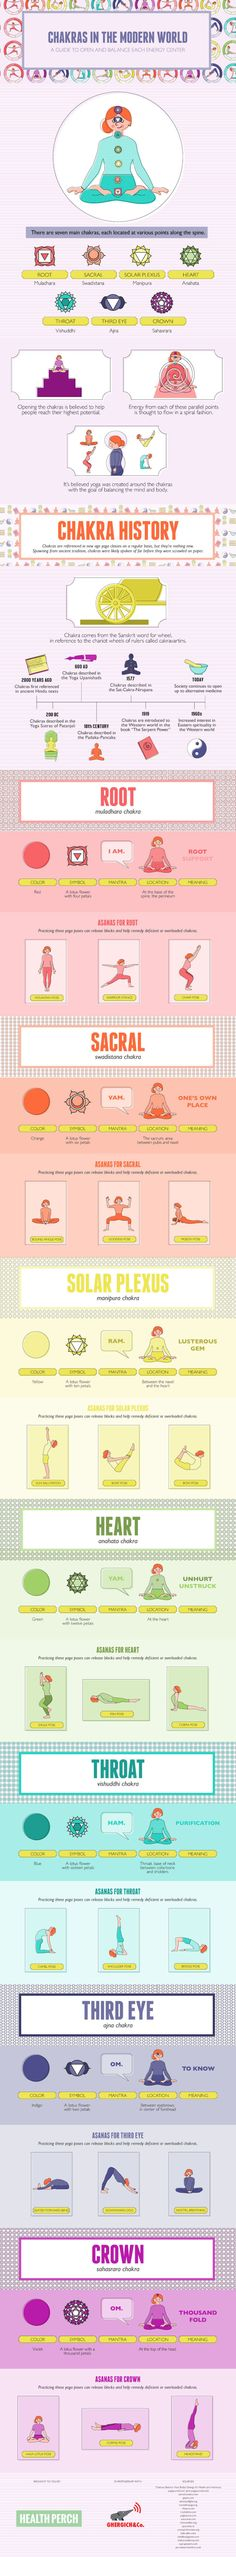 Balance Your 7 Chakras With These Yoga Poses & Mantras (Infographic)…